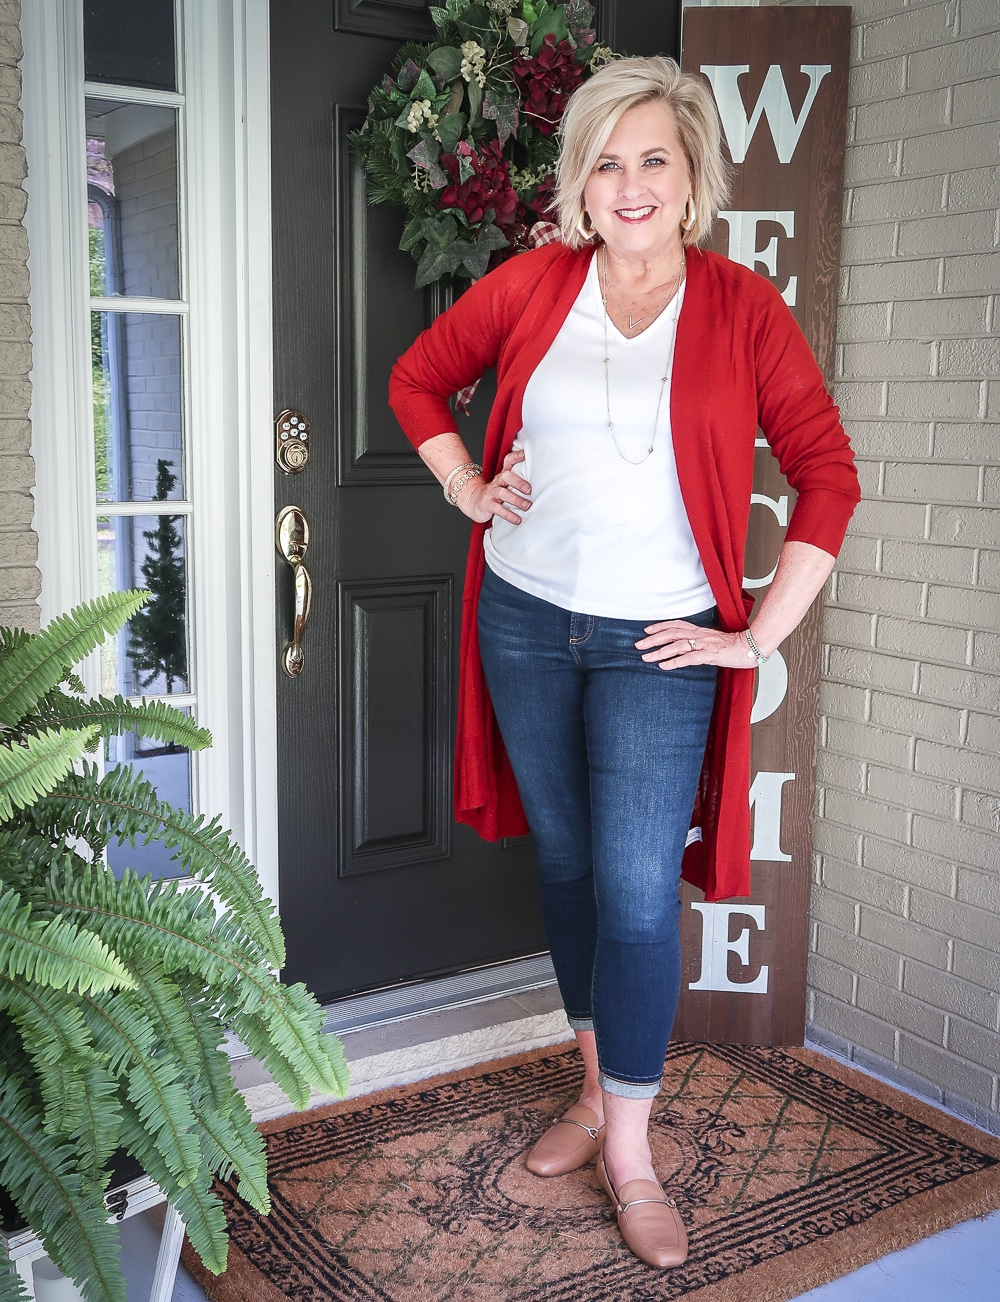 Fashion Blogger 50 Is Not Old is doing a Tuesday Try-On Session with Target and styling a red duster, a white v-neck tee shirt, and ankle jeans from Chicos